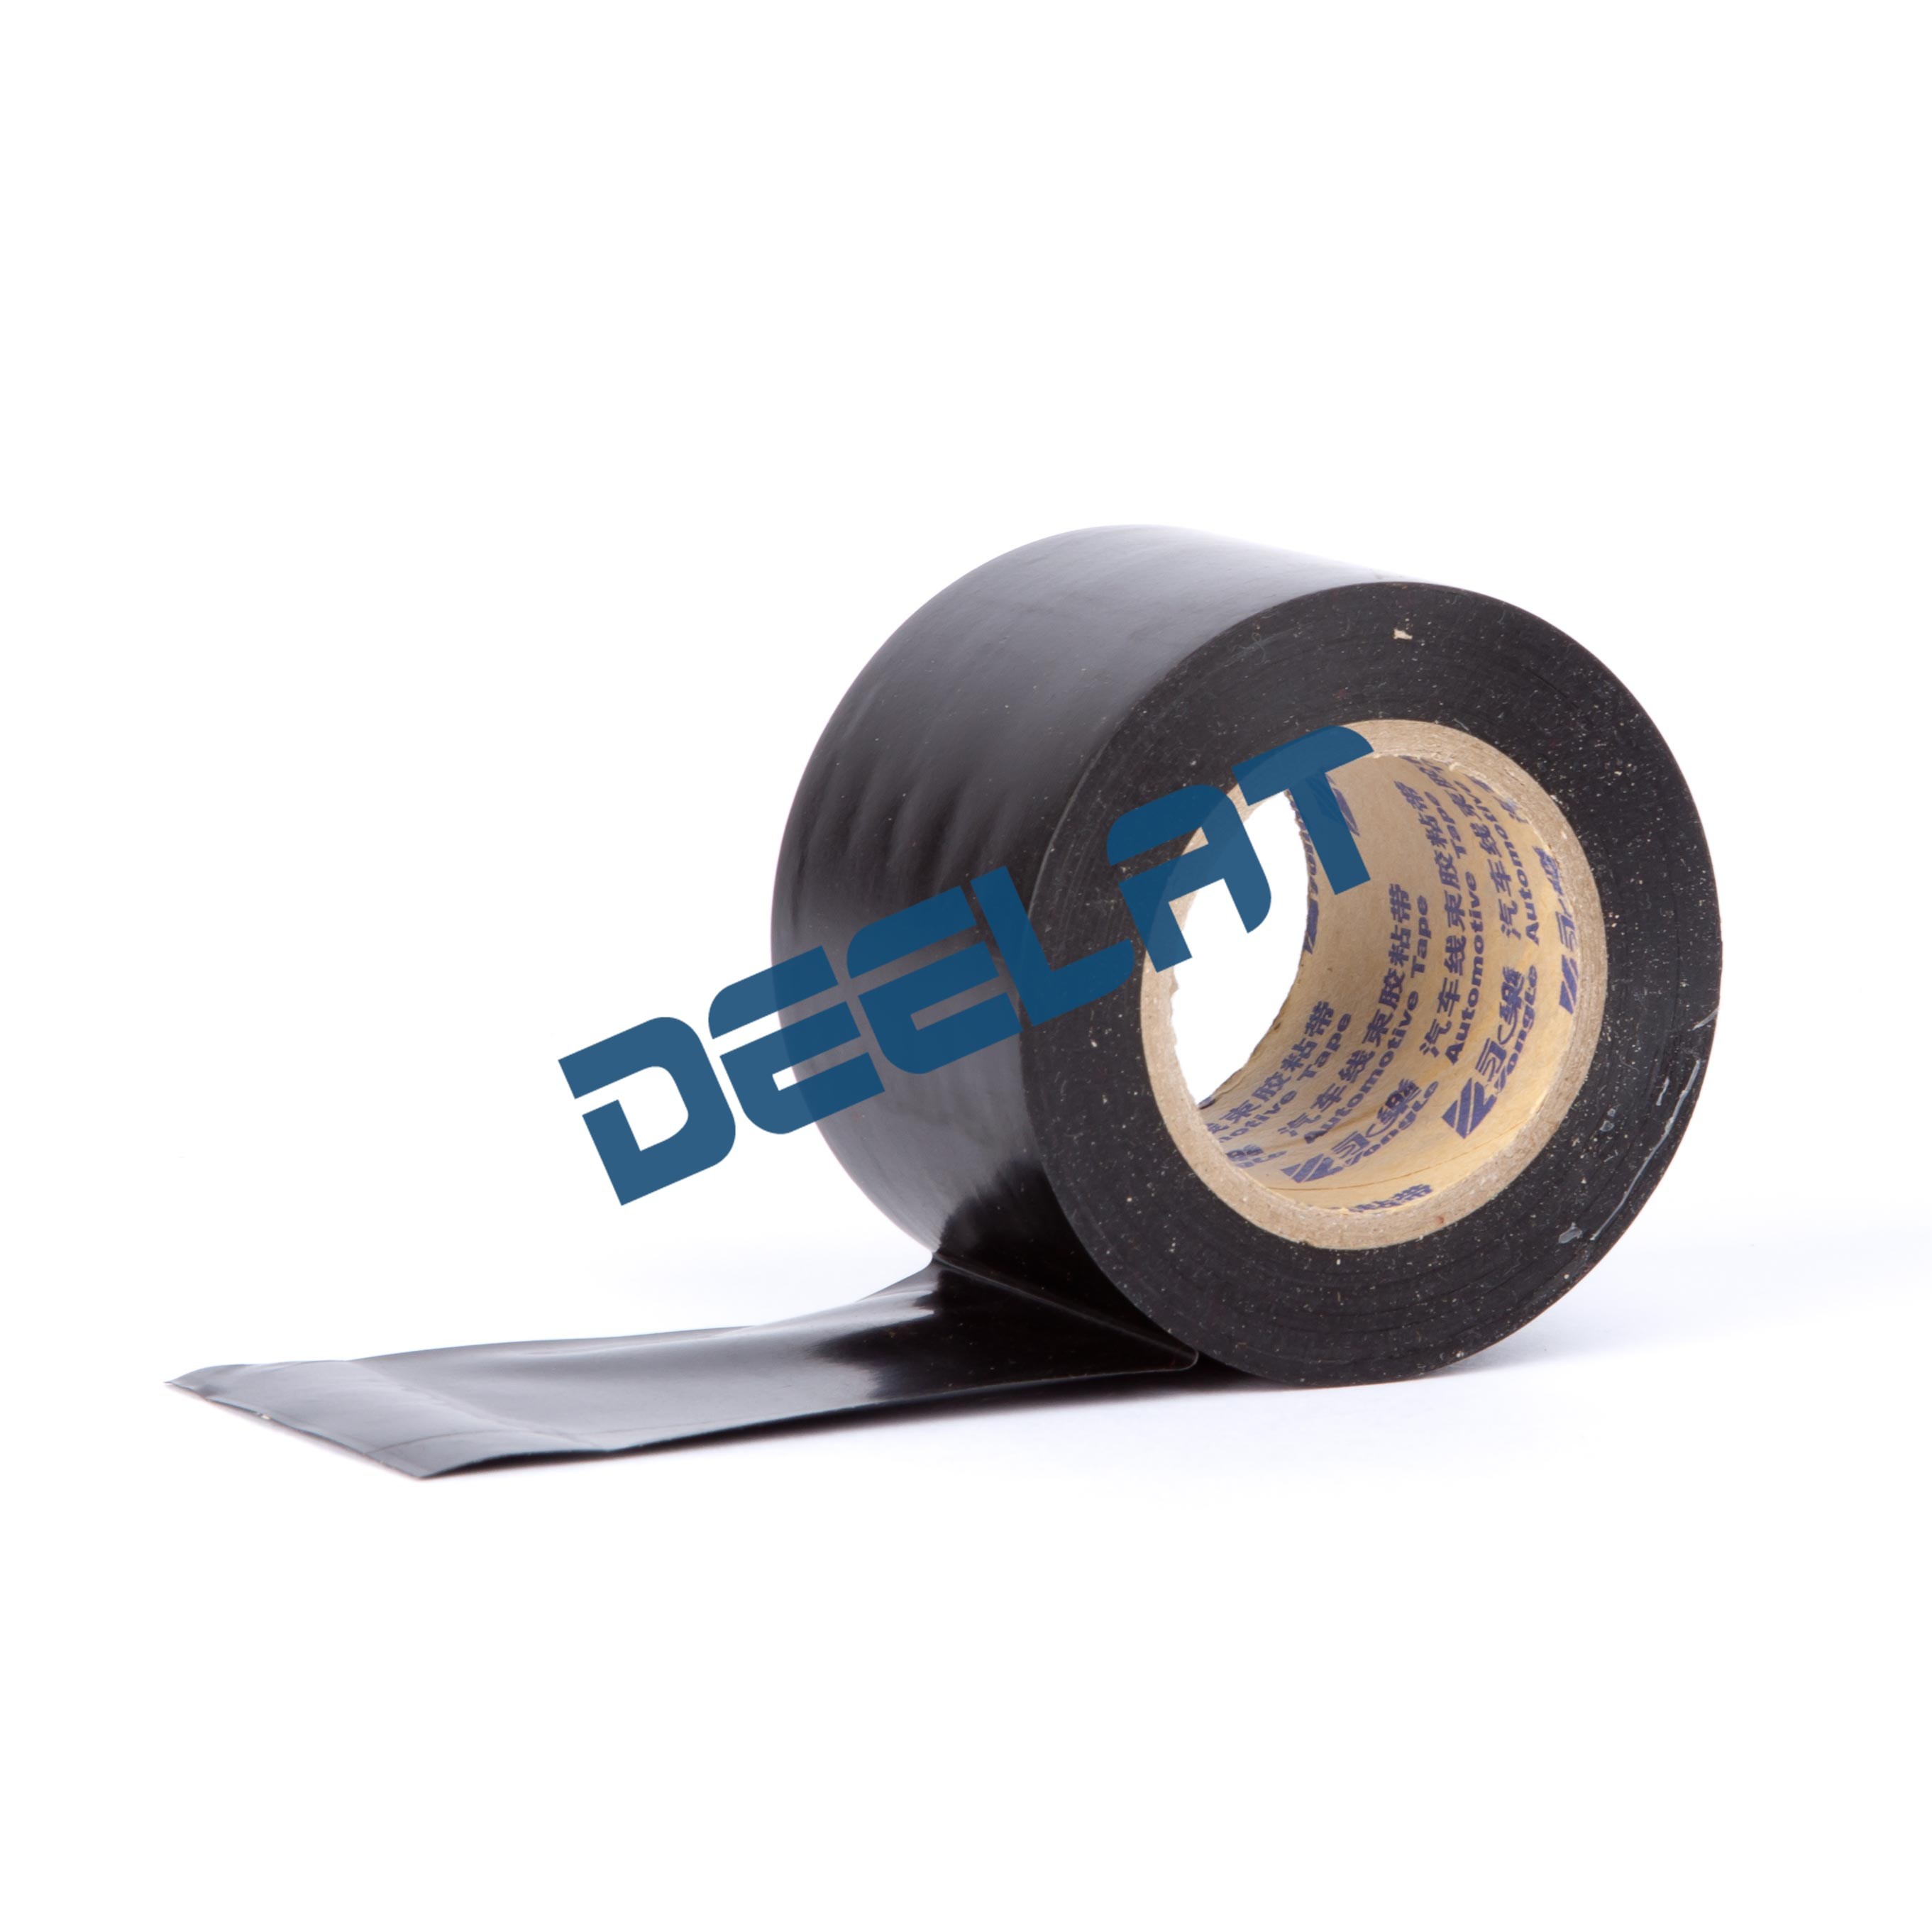 Auto IWre Harness Tape deelat blog automotive wire harness tape uses, types and auto wire harness tape at gsmportal.co